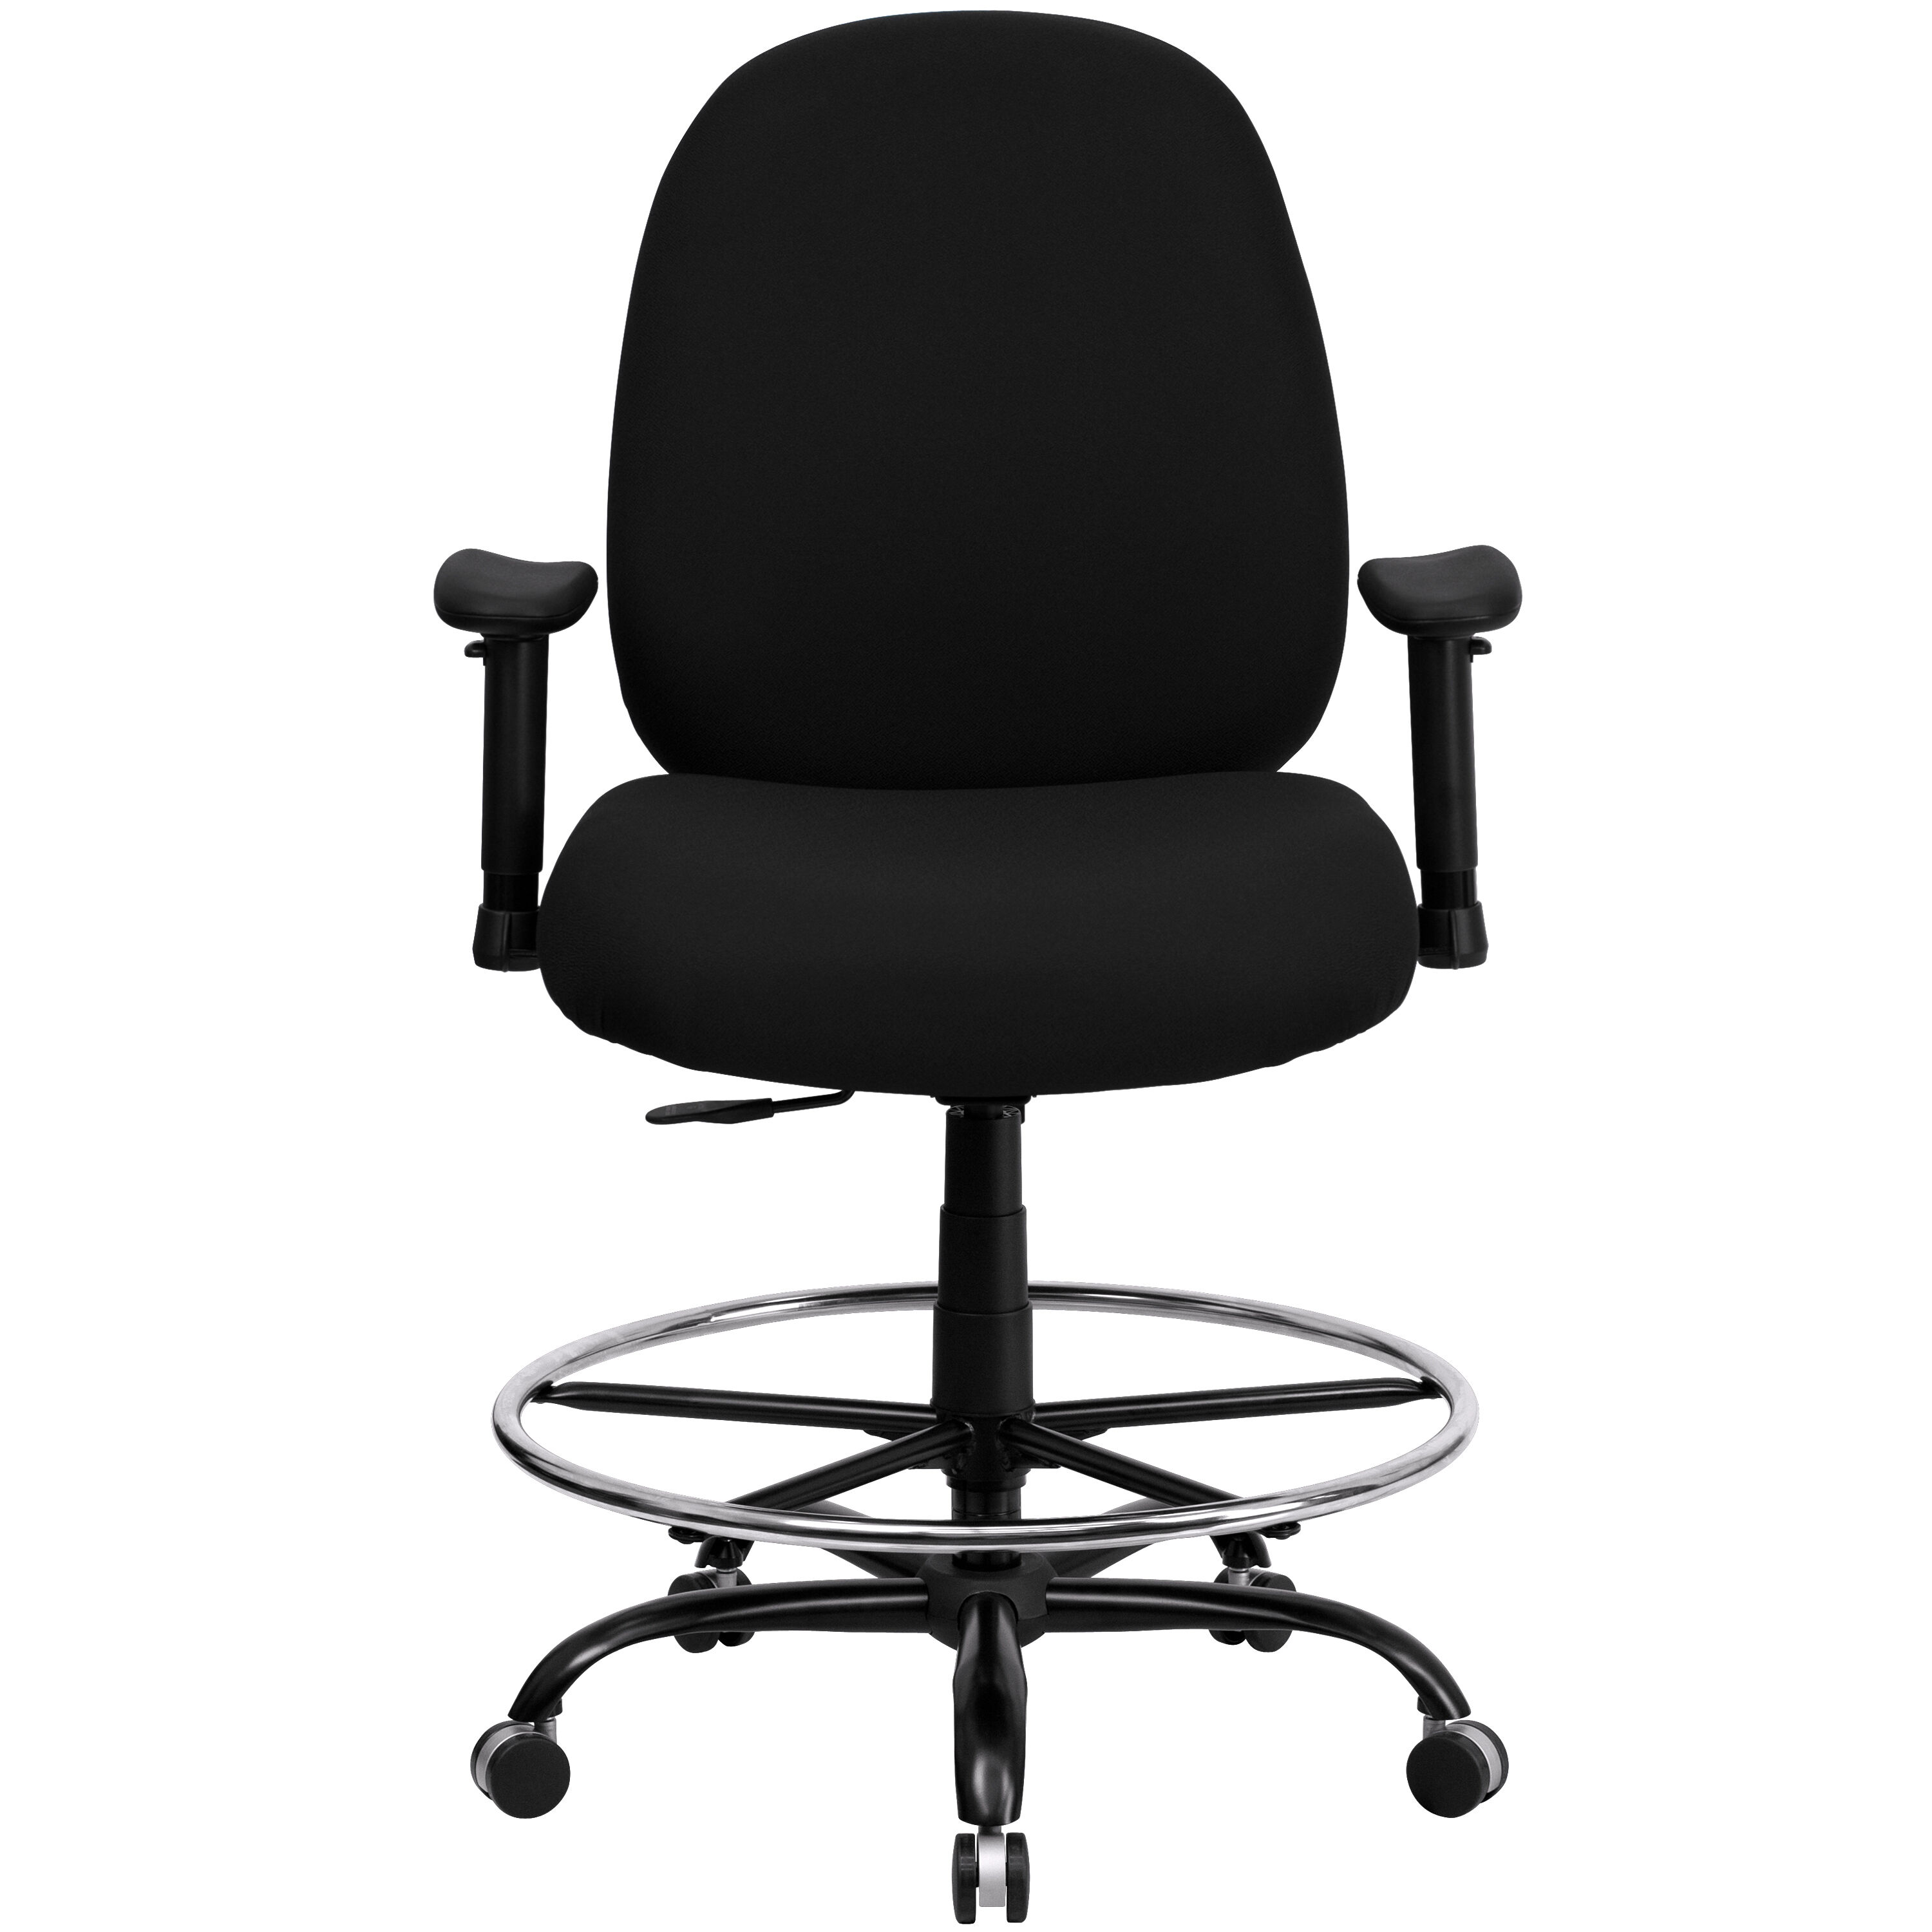 Rated Black Fabric Drafting Chair With Adjustable